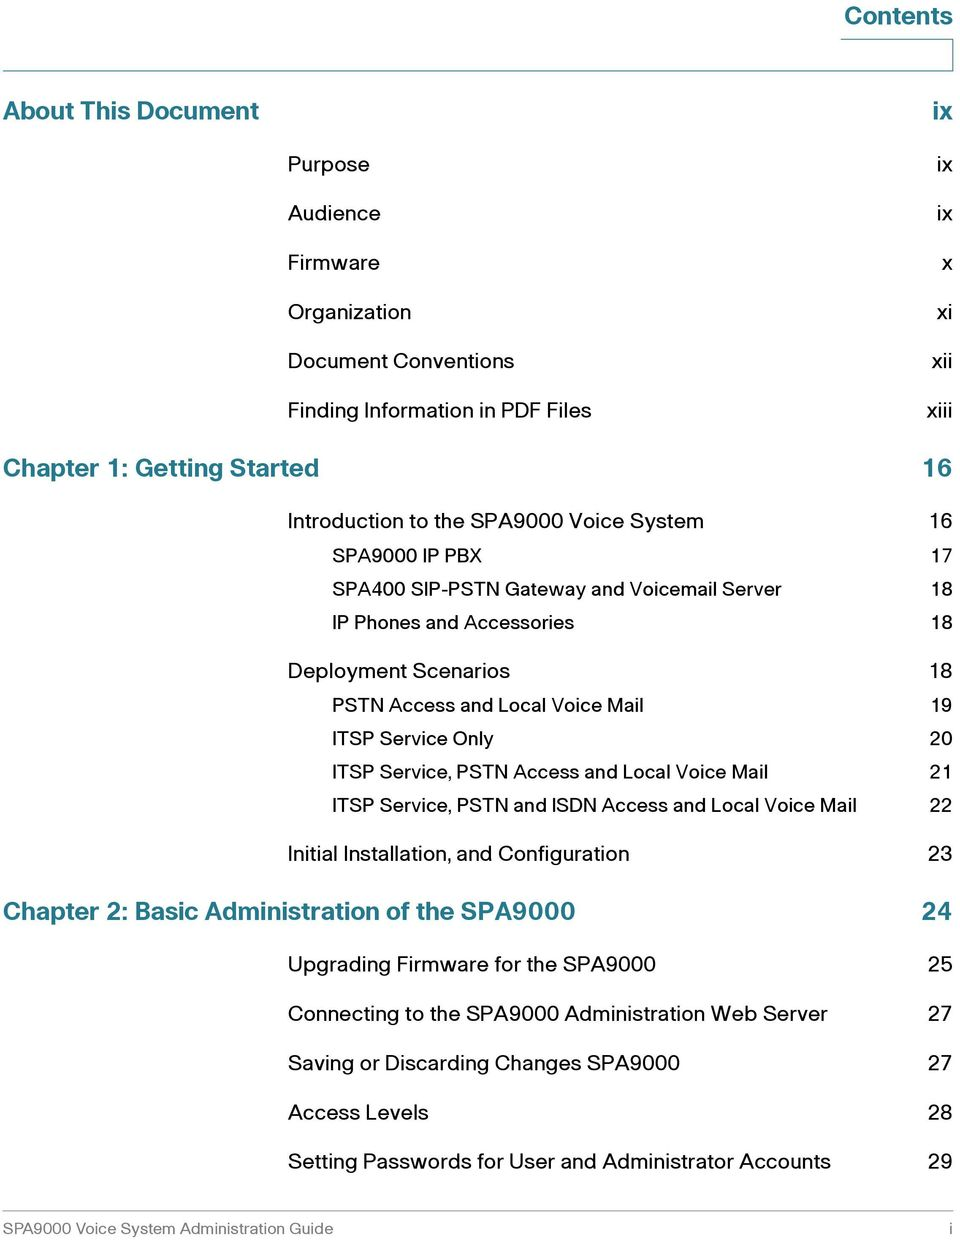 ITSP Service, PSTN Access and Local Voice Mail 21 ITSP Service, PSTN and ISDN Access and Local Voice Mail 22 Initial Installation, and Configuration 23 Chapter 2: Basic Administration of the SPA9000